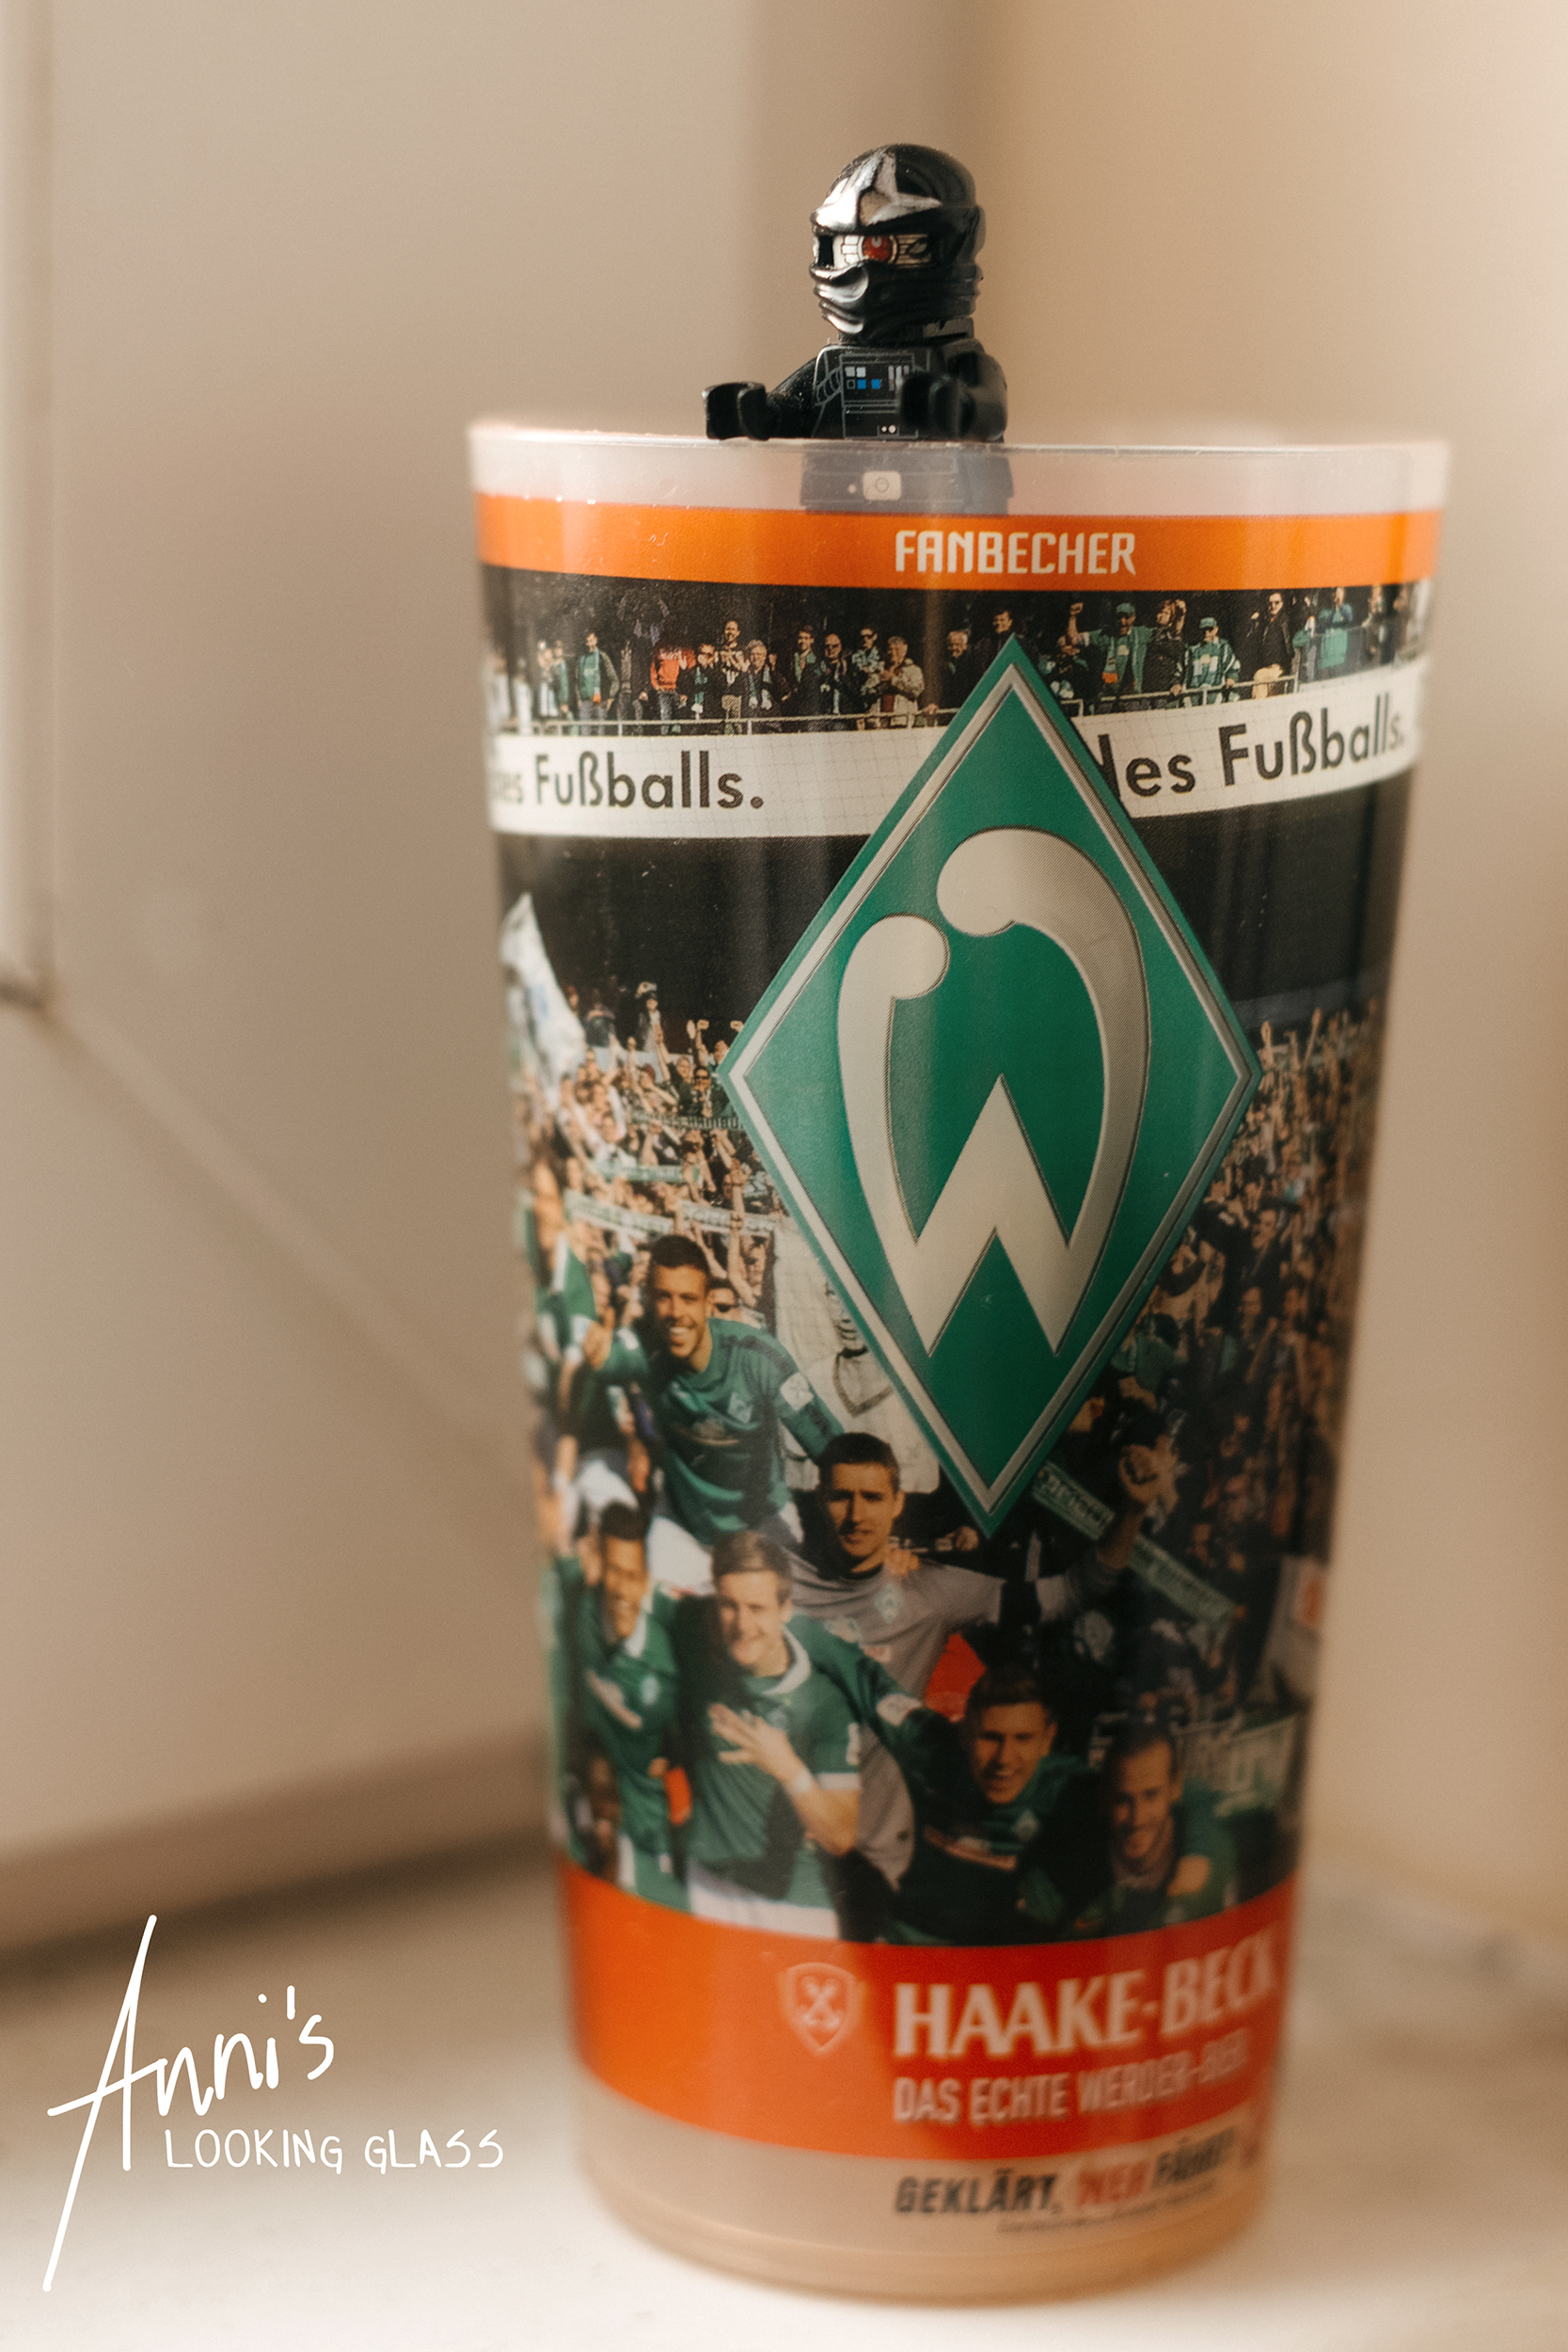 A Lego figure sitting in a Werder Bremen branded plastic cup